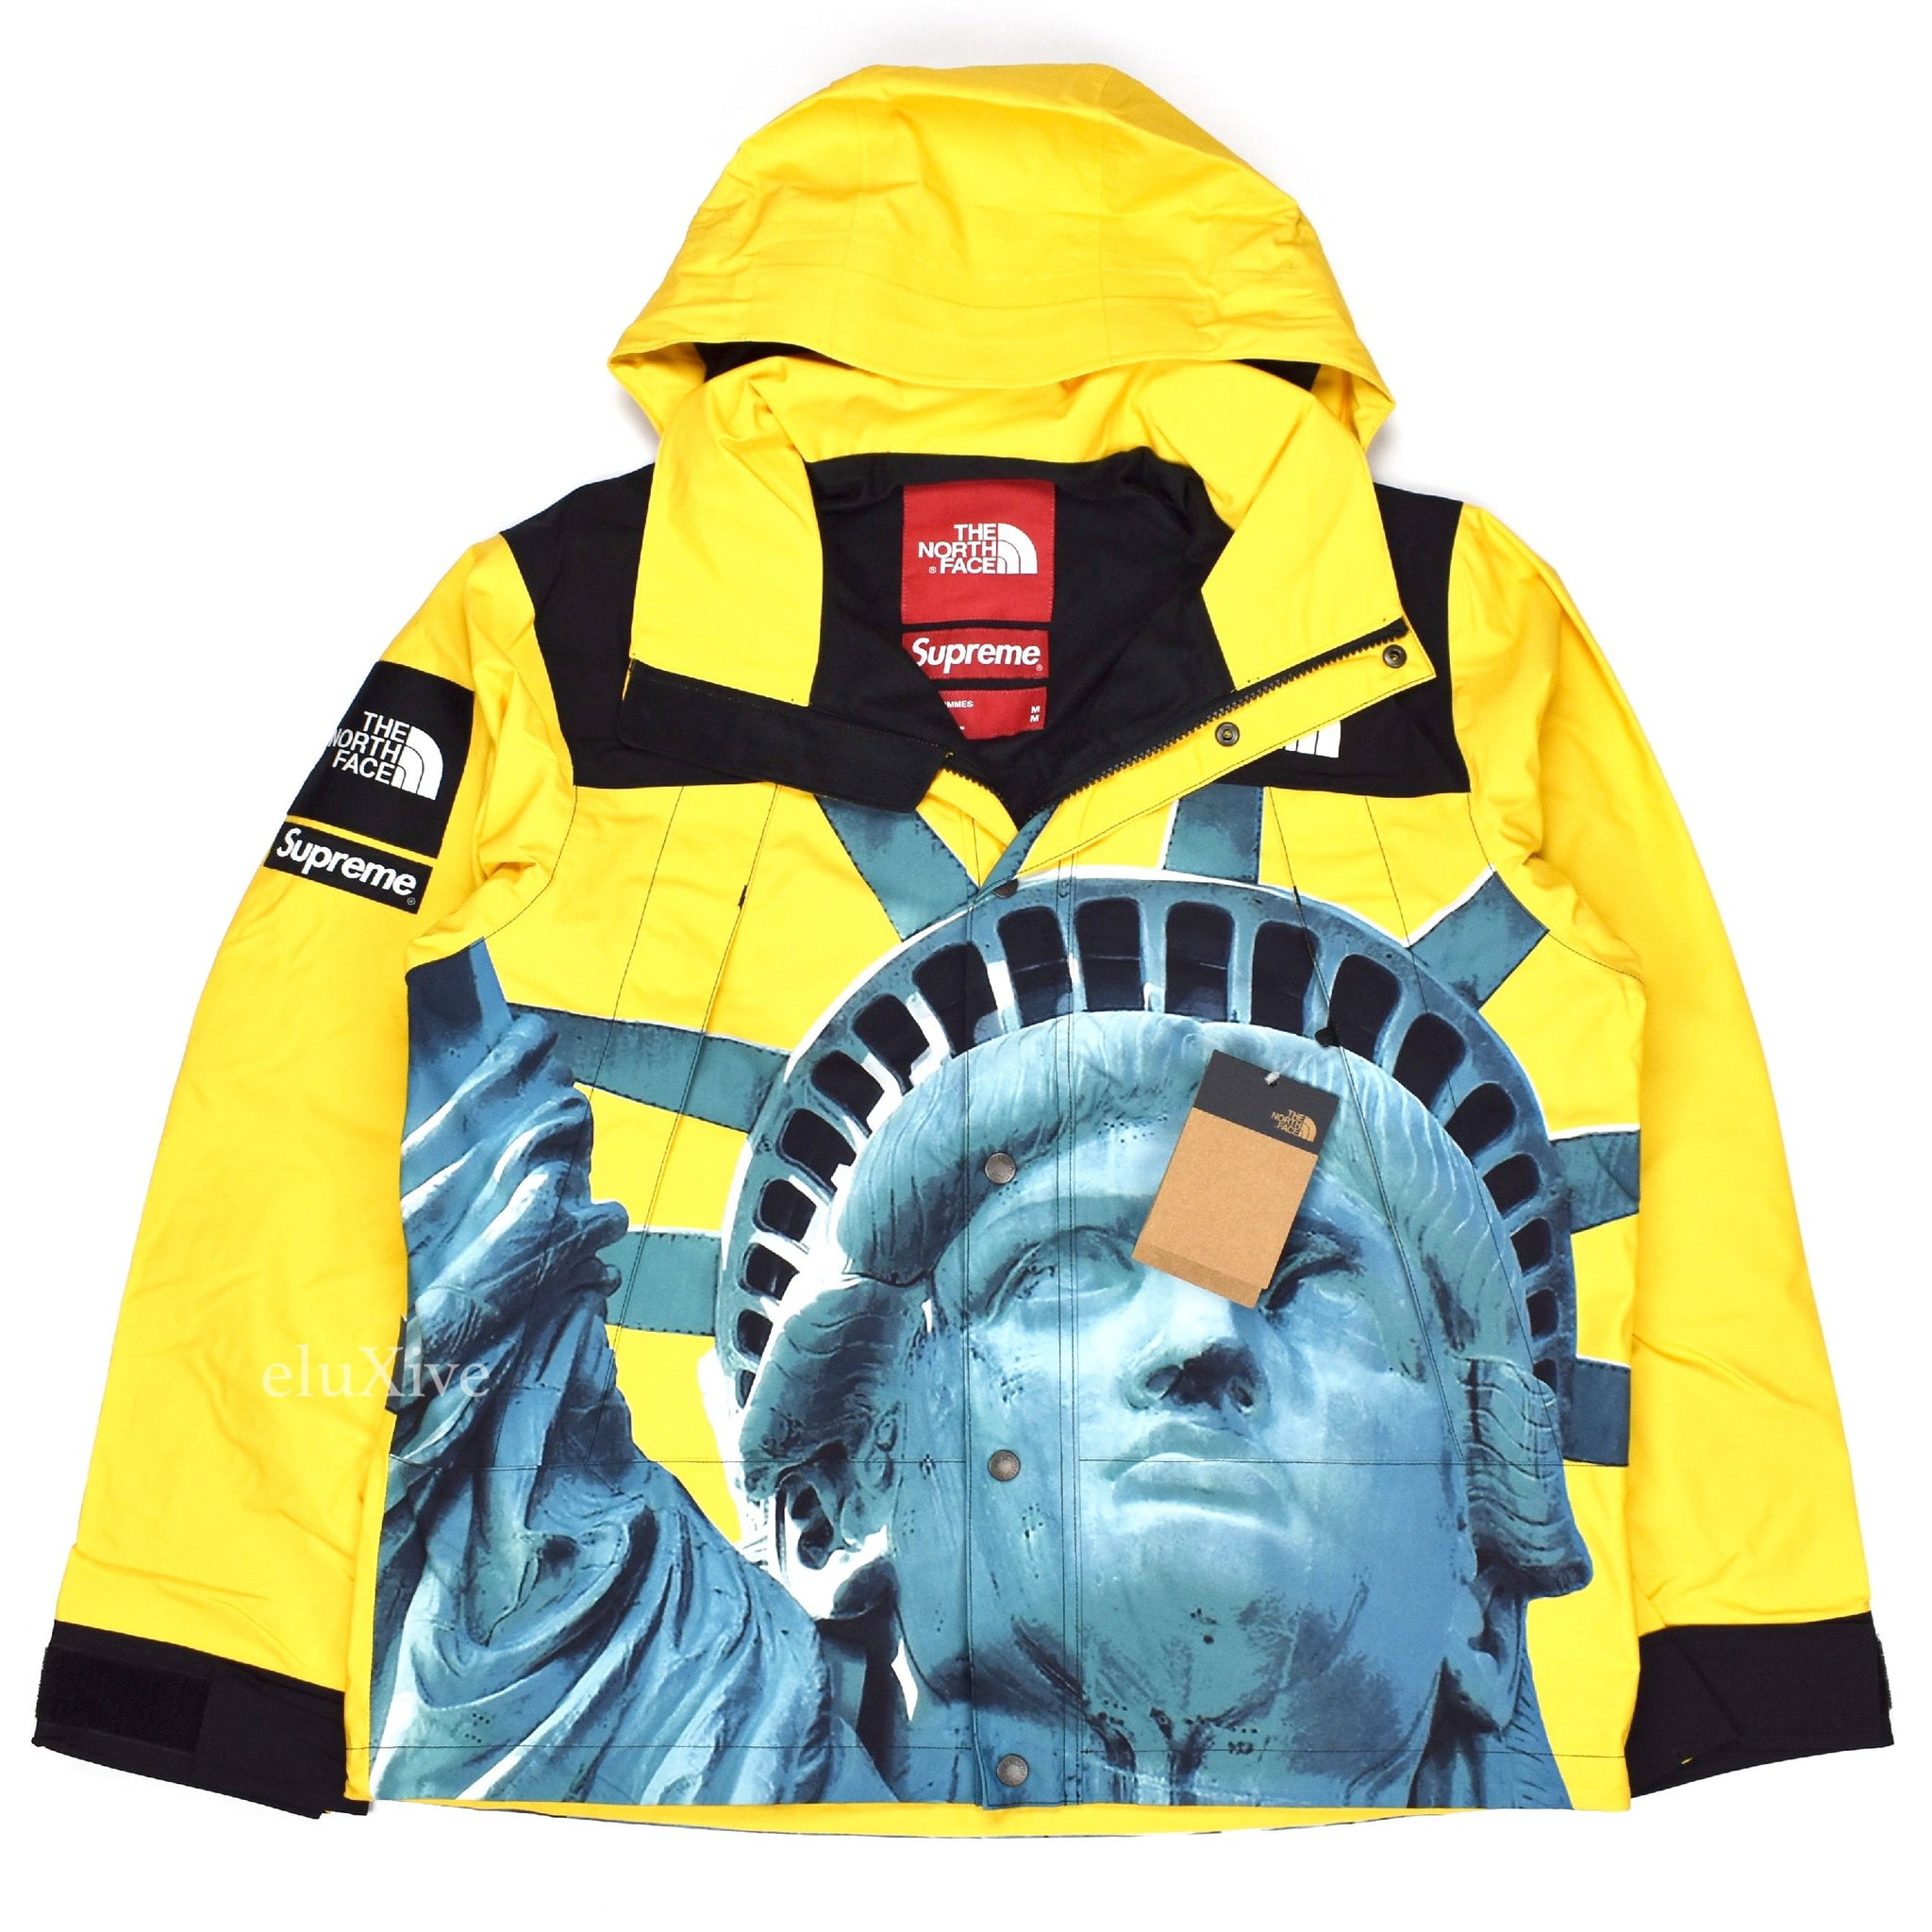 Supreme X The North Face Liberty Print Mountain Jacket Yellow